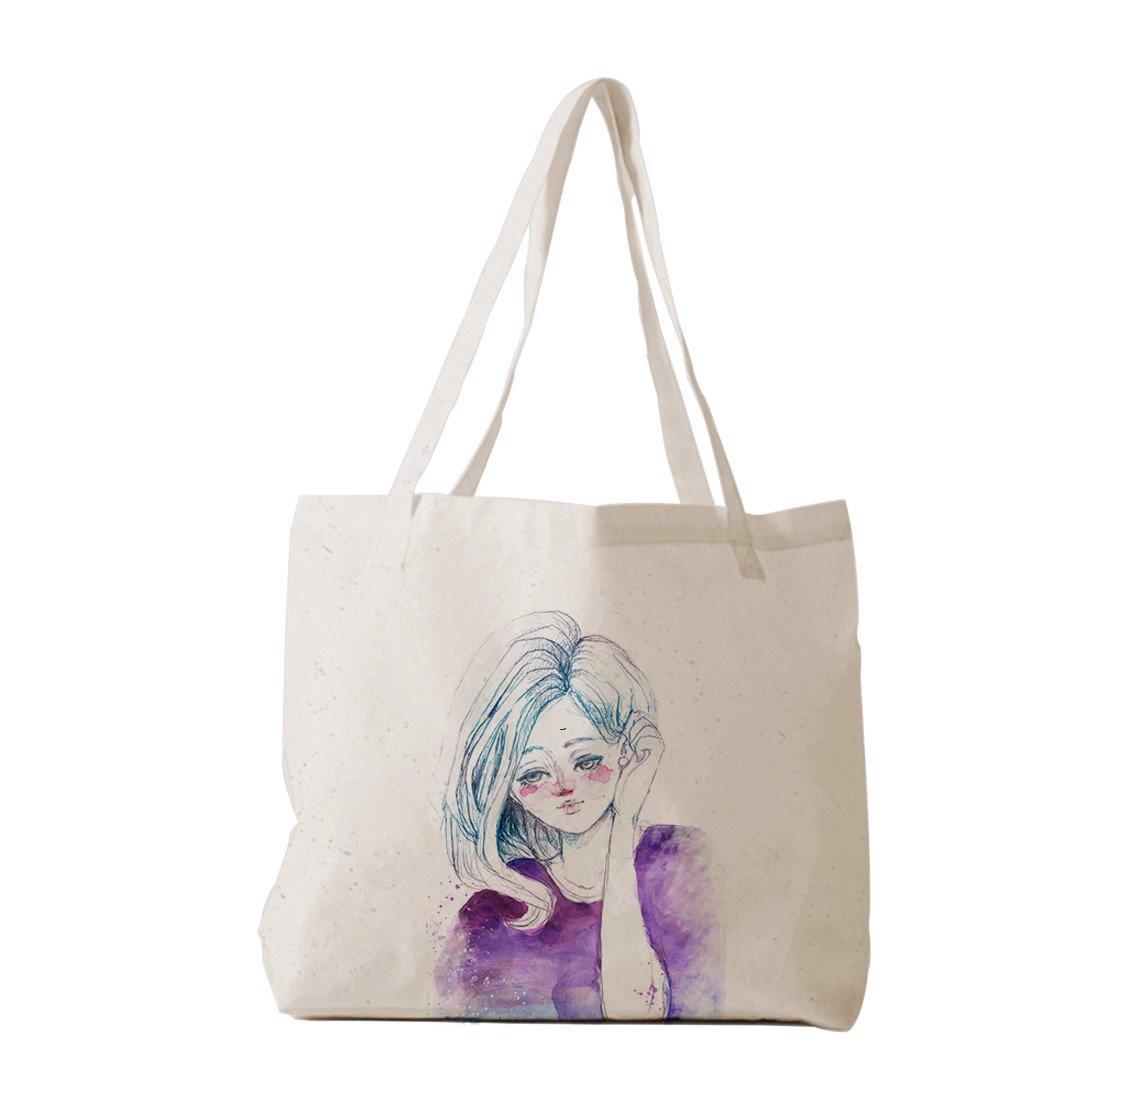 Tote Bag - Paint girl